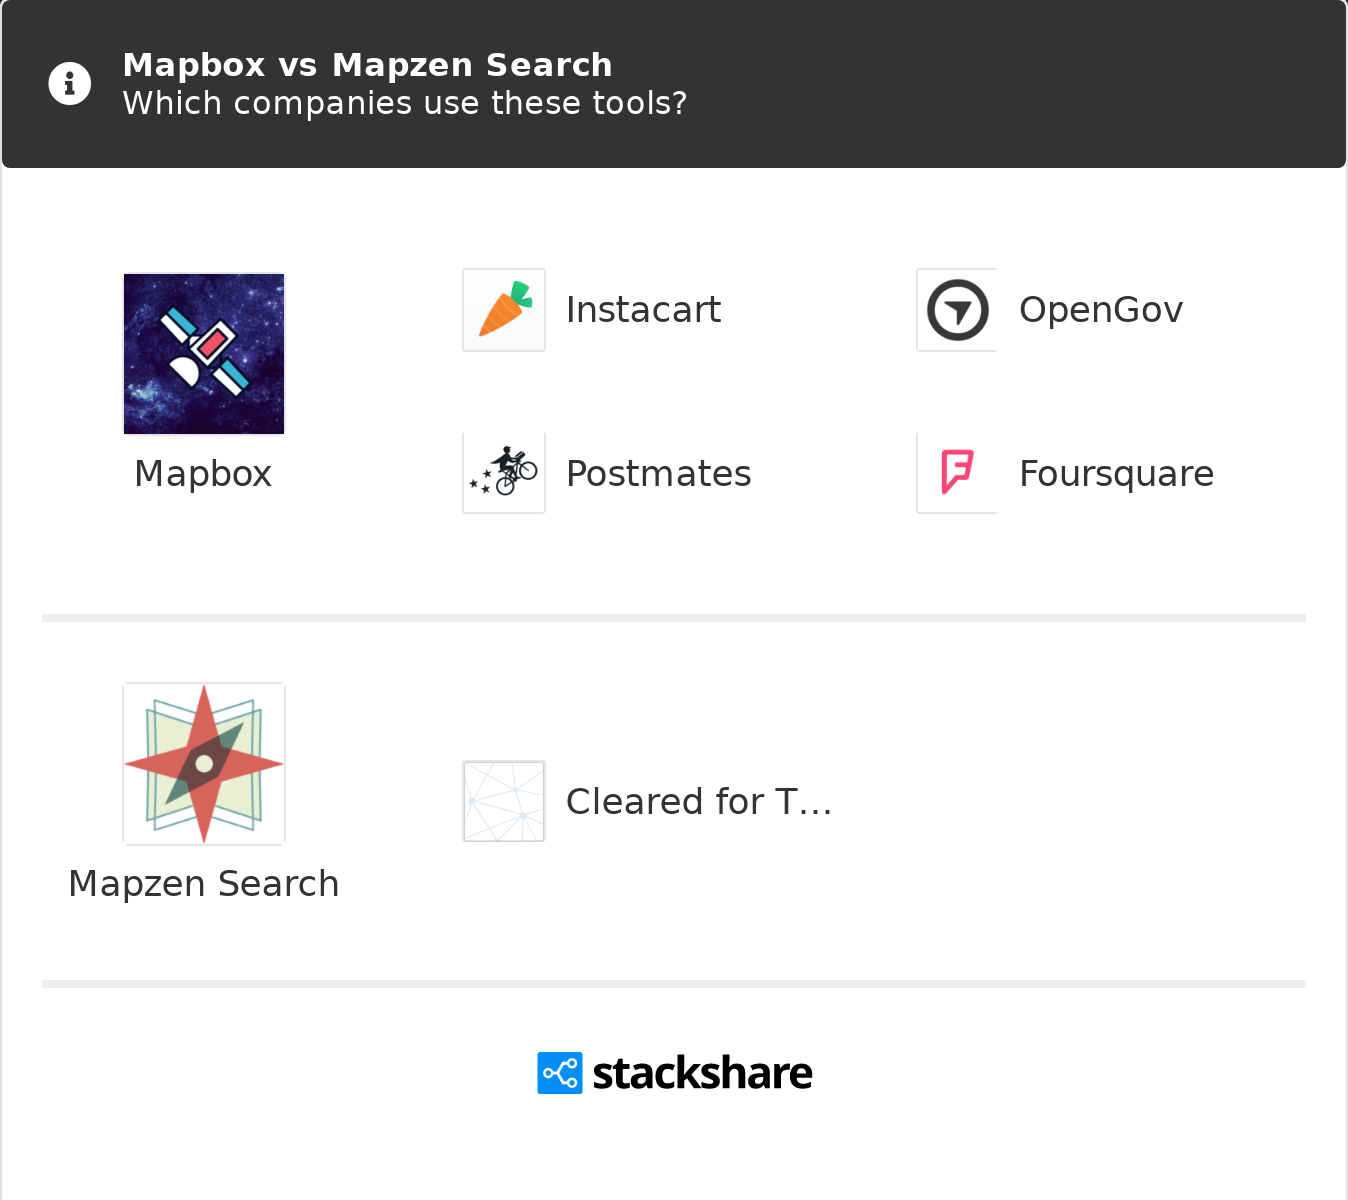 Mapbox vs Mapzen Search | What are the differences?